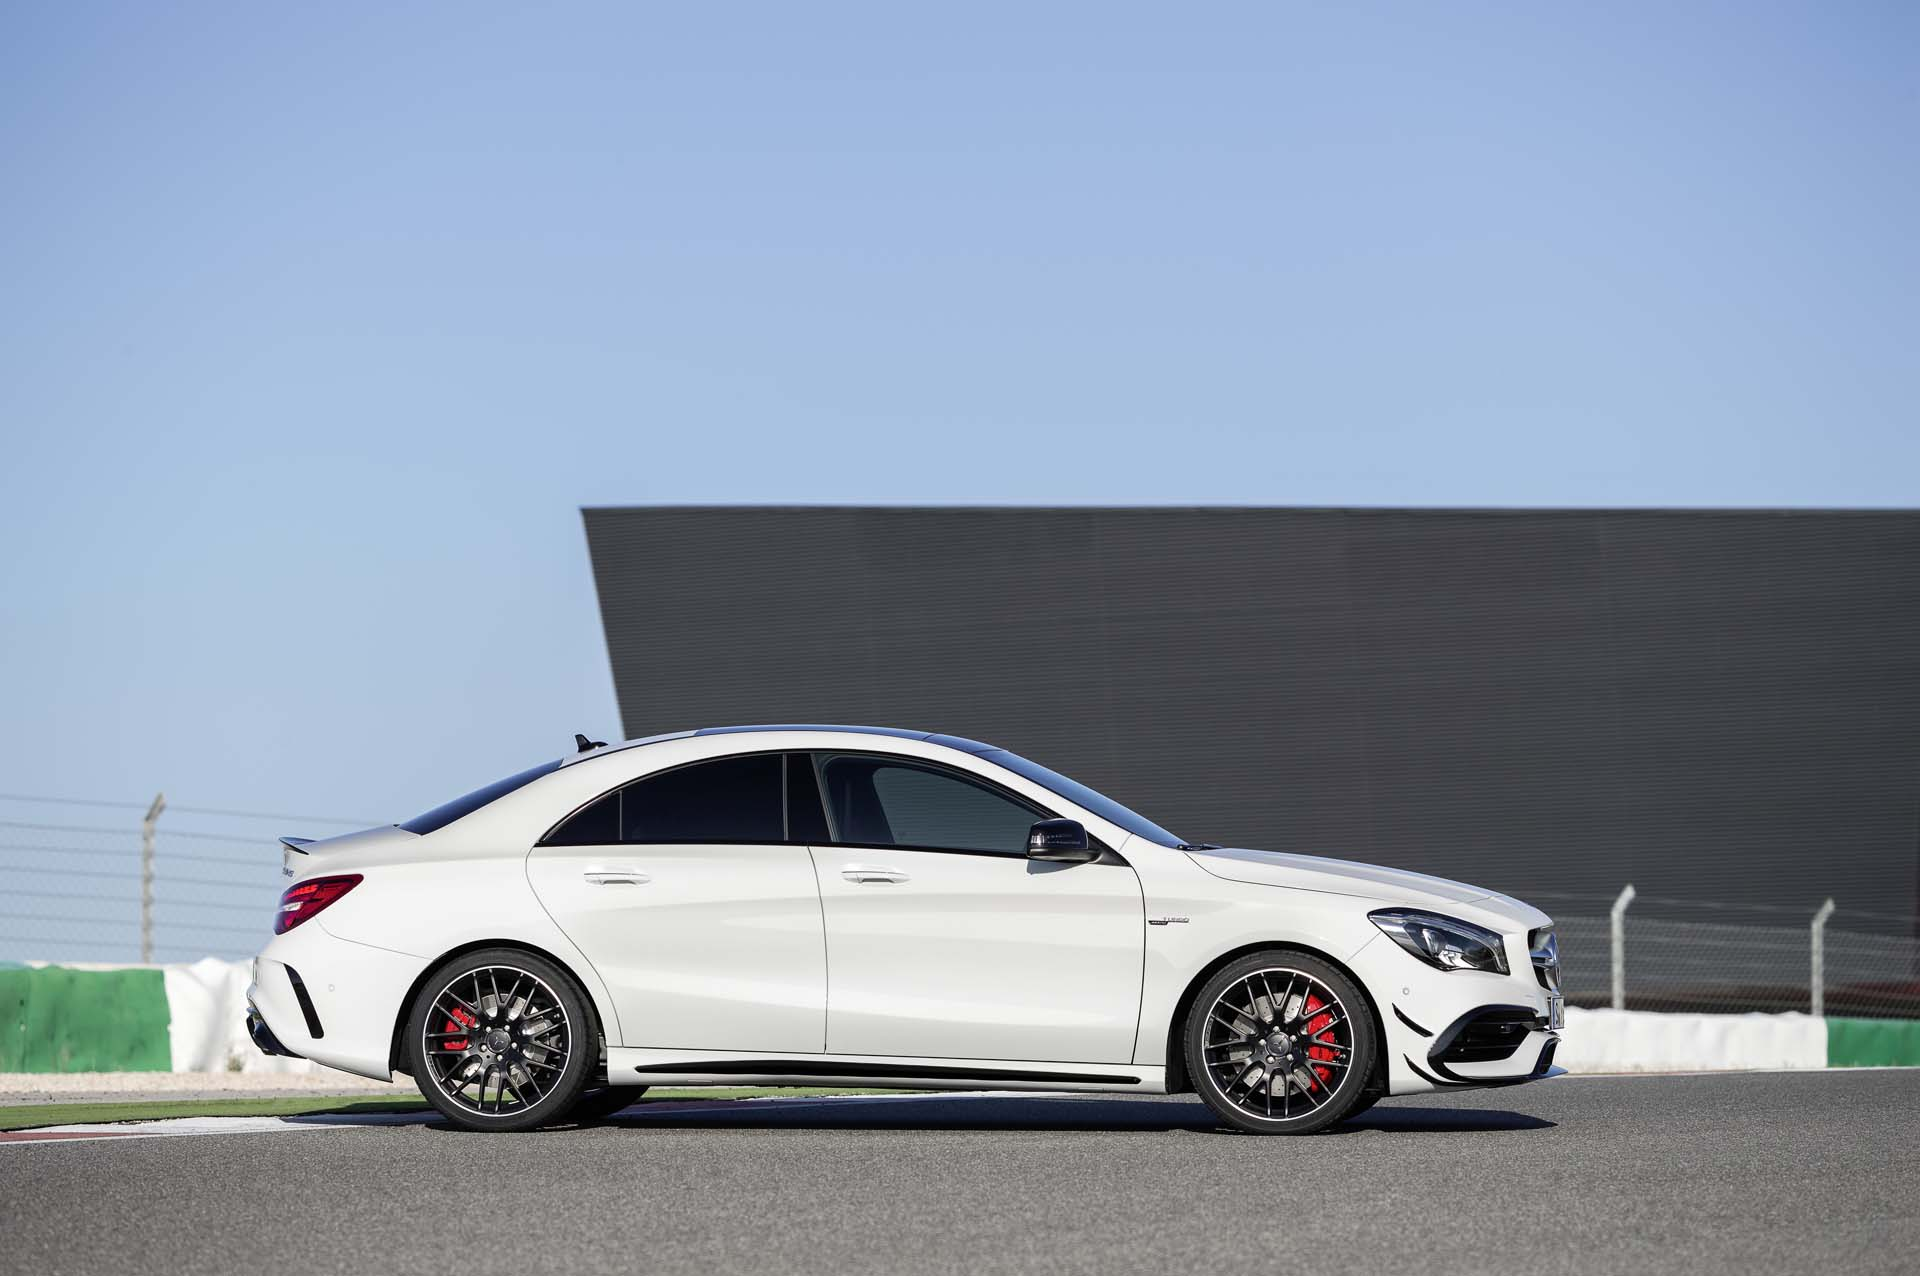 Toyota Kansas City >> 2018 Mercedes-Benz CLA Class Review, Ratings, Specs, Prices, and Photos - The Car Connection